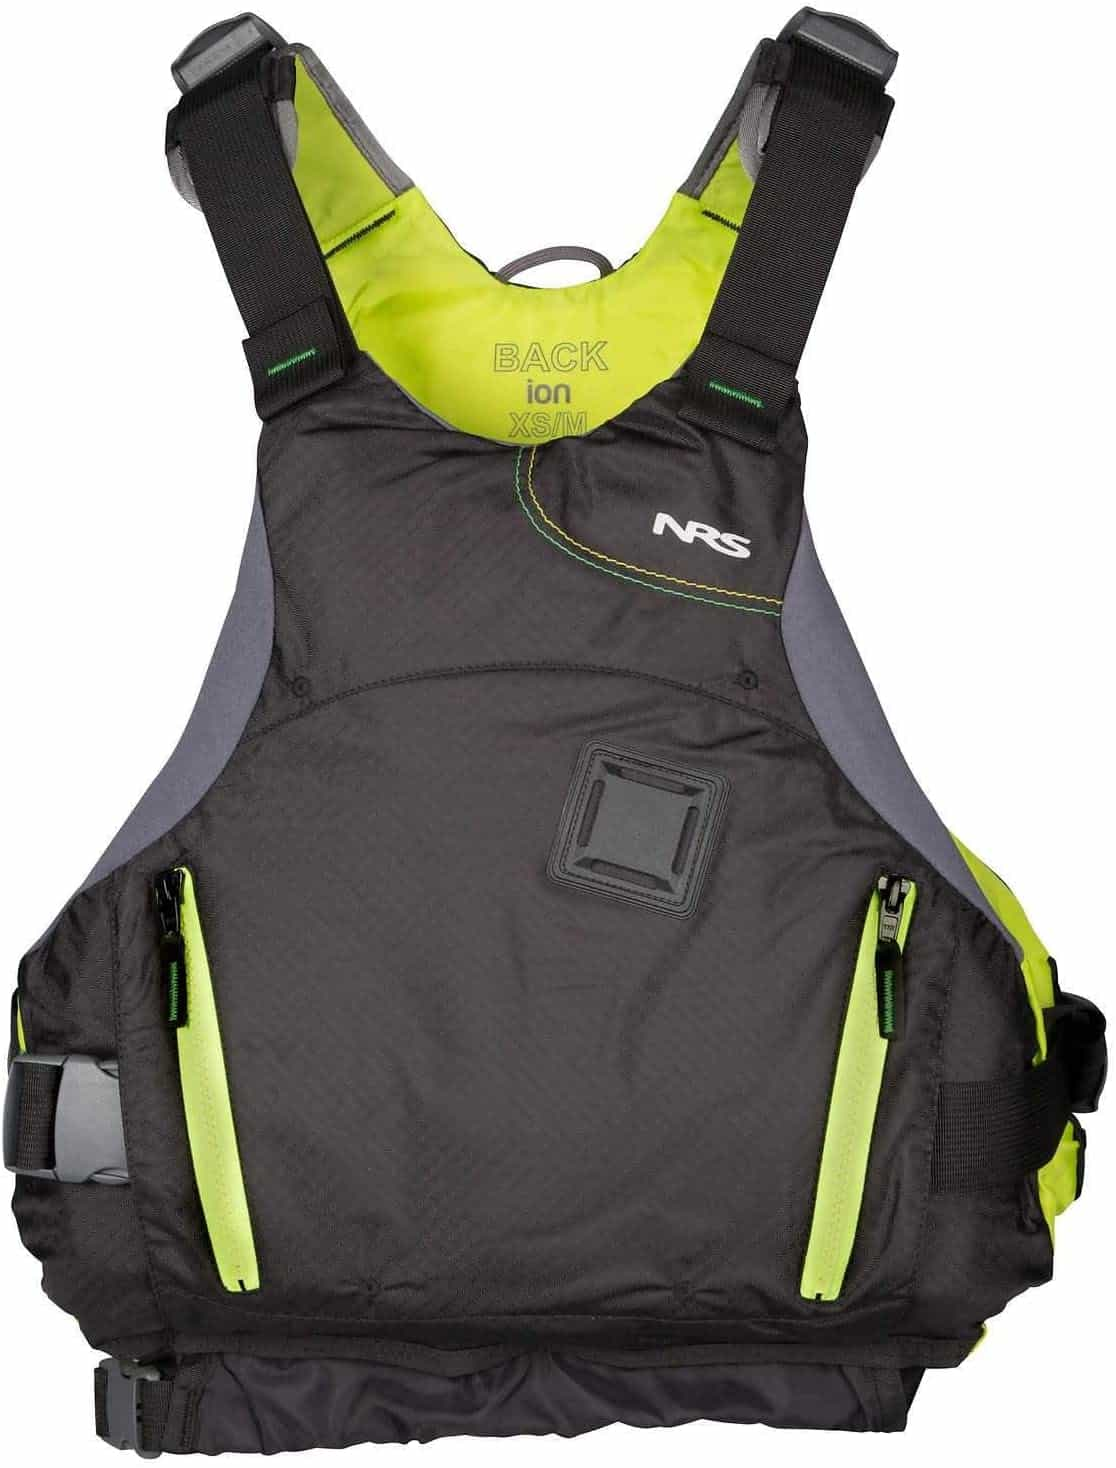 Ion Personal Flotation Device Jacket by NRS